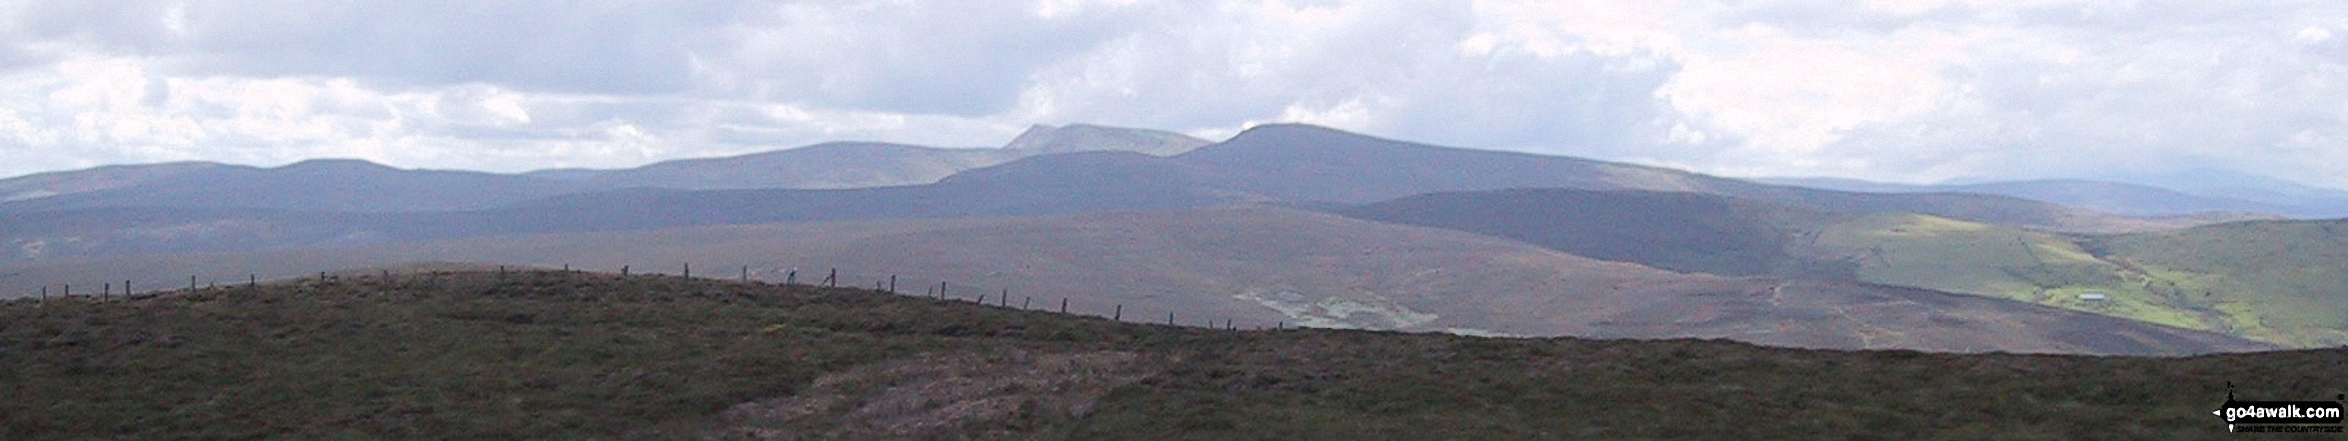 The Berwyns with Cadair Berwyn (centre left) and Cadair Bronwen (centre right) prominent from Moel Fferna